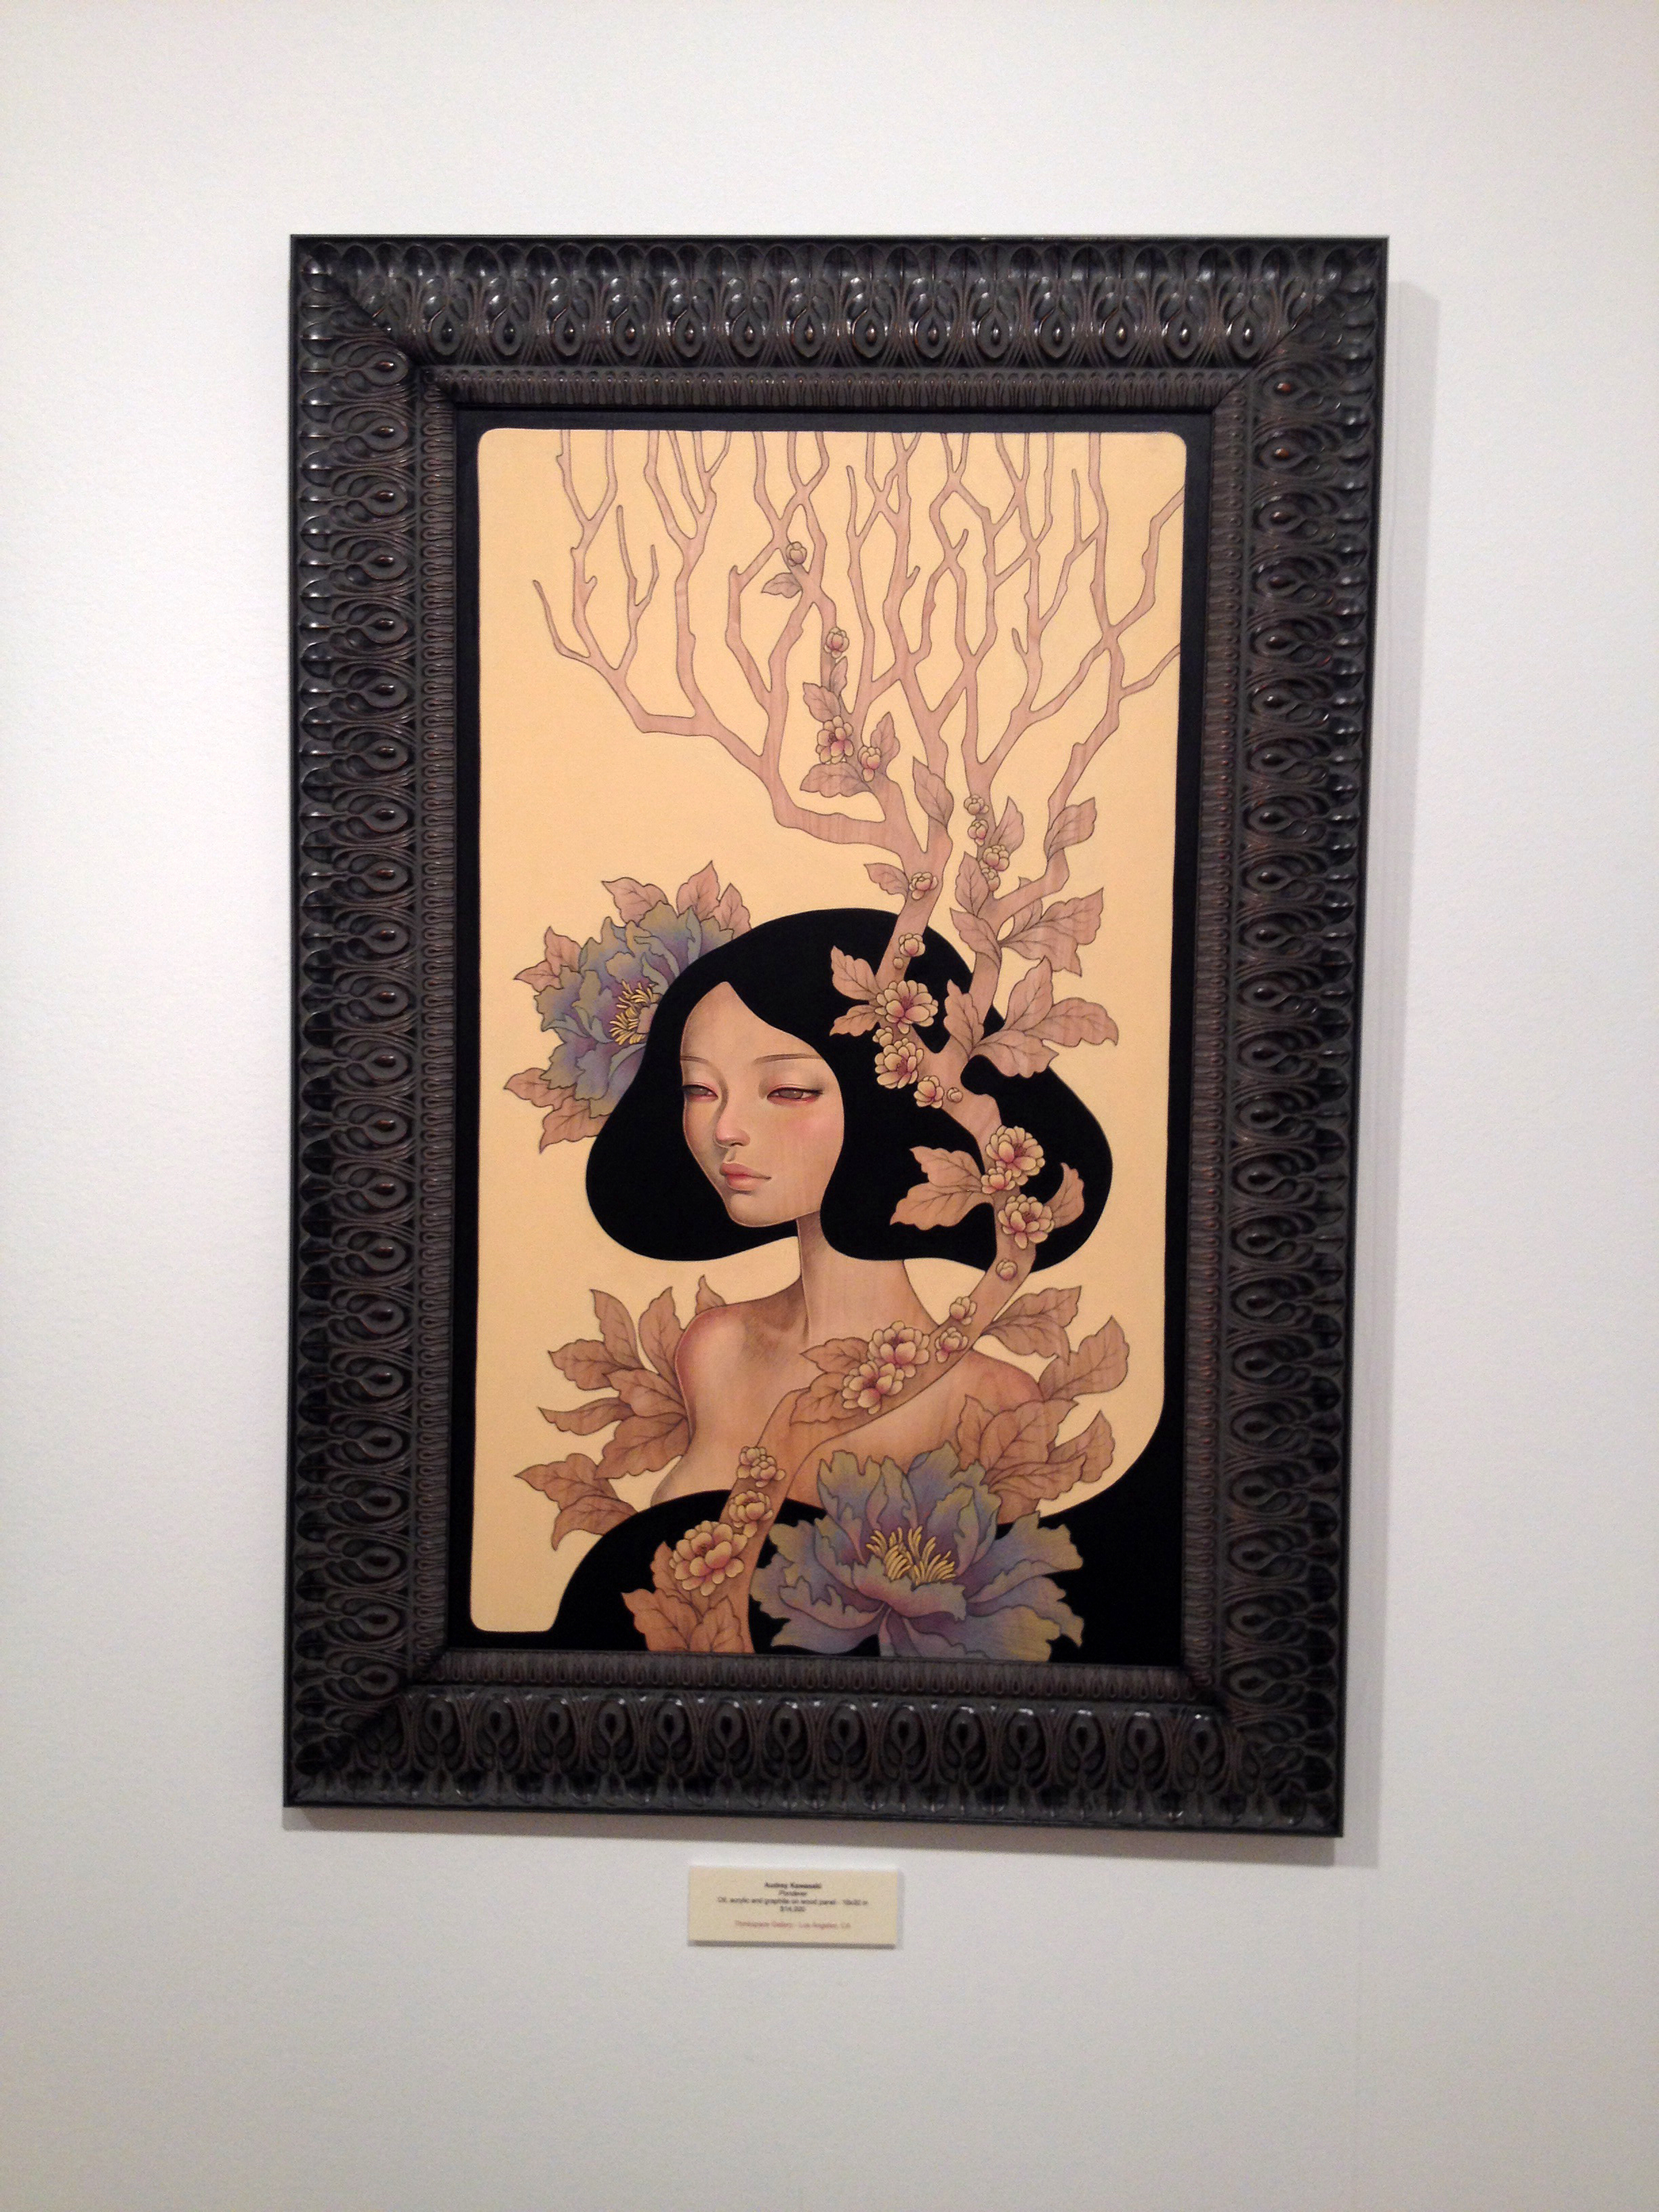 To see Audrey Kawasaki's work in person was such a treat.